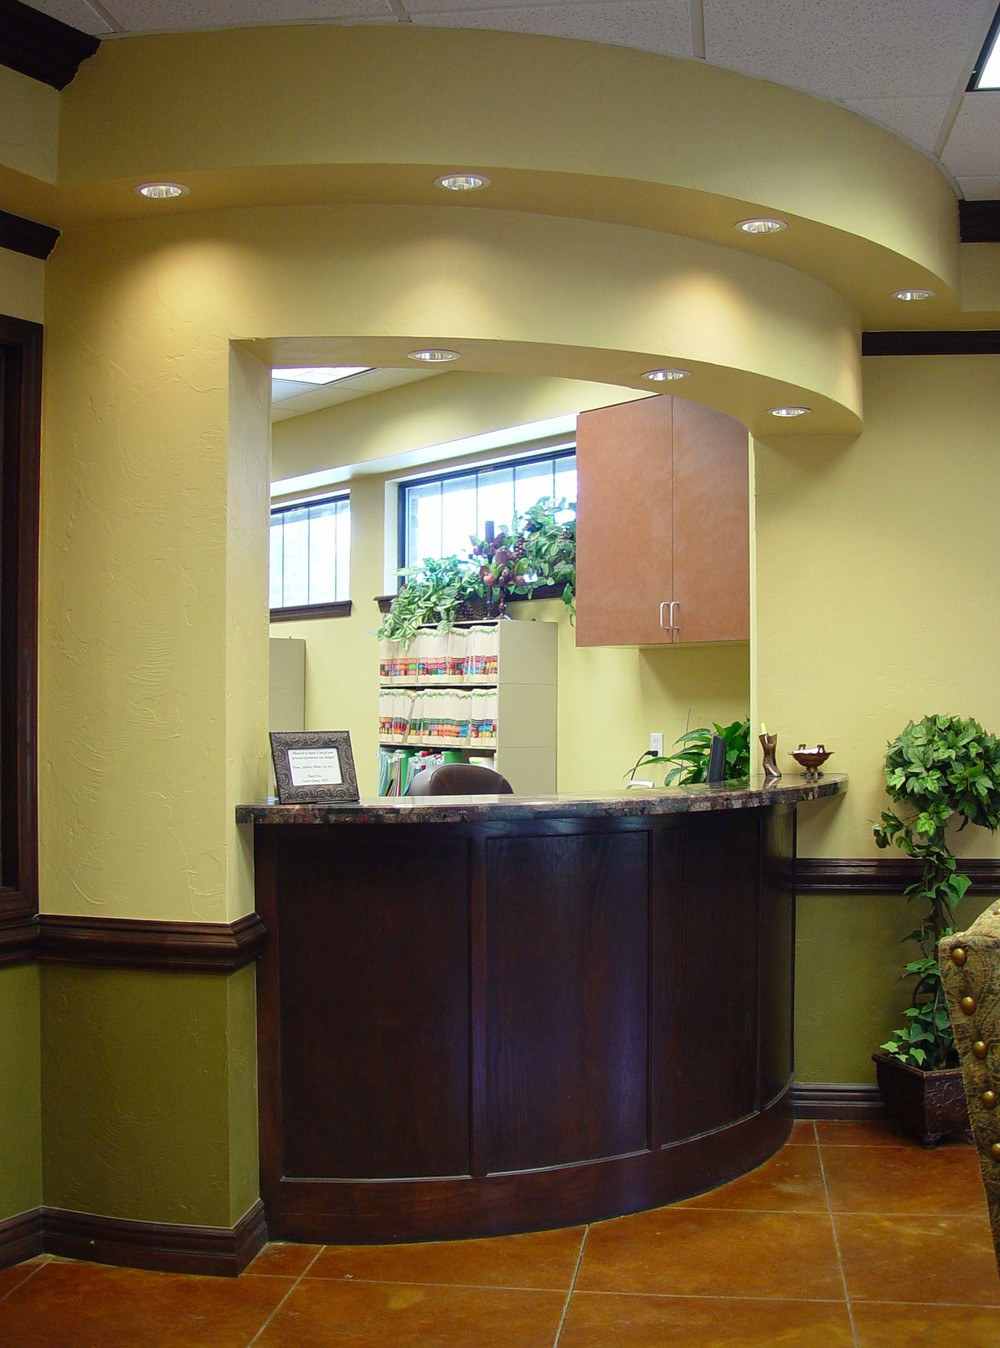 Turney Dental Clinic Lobby 03 copy.jpg